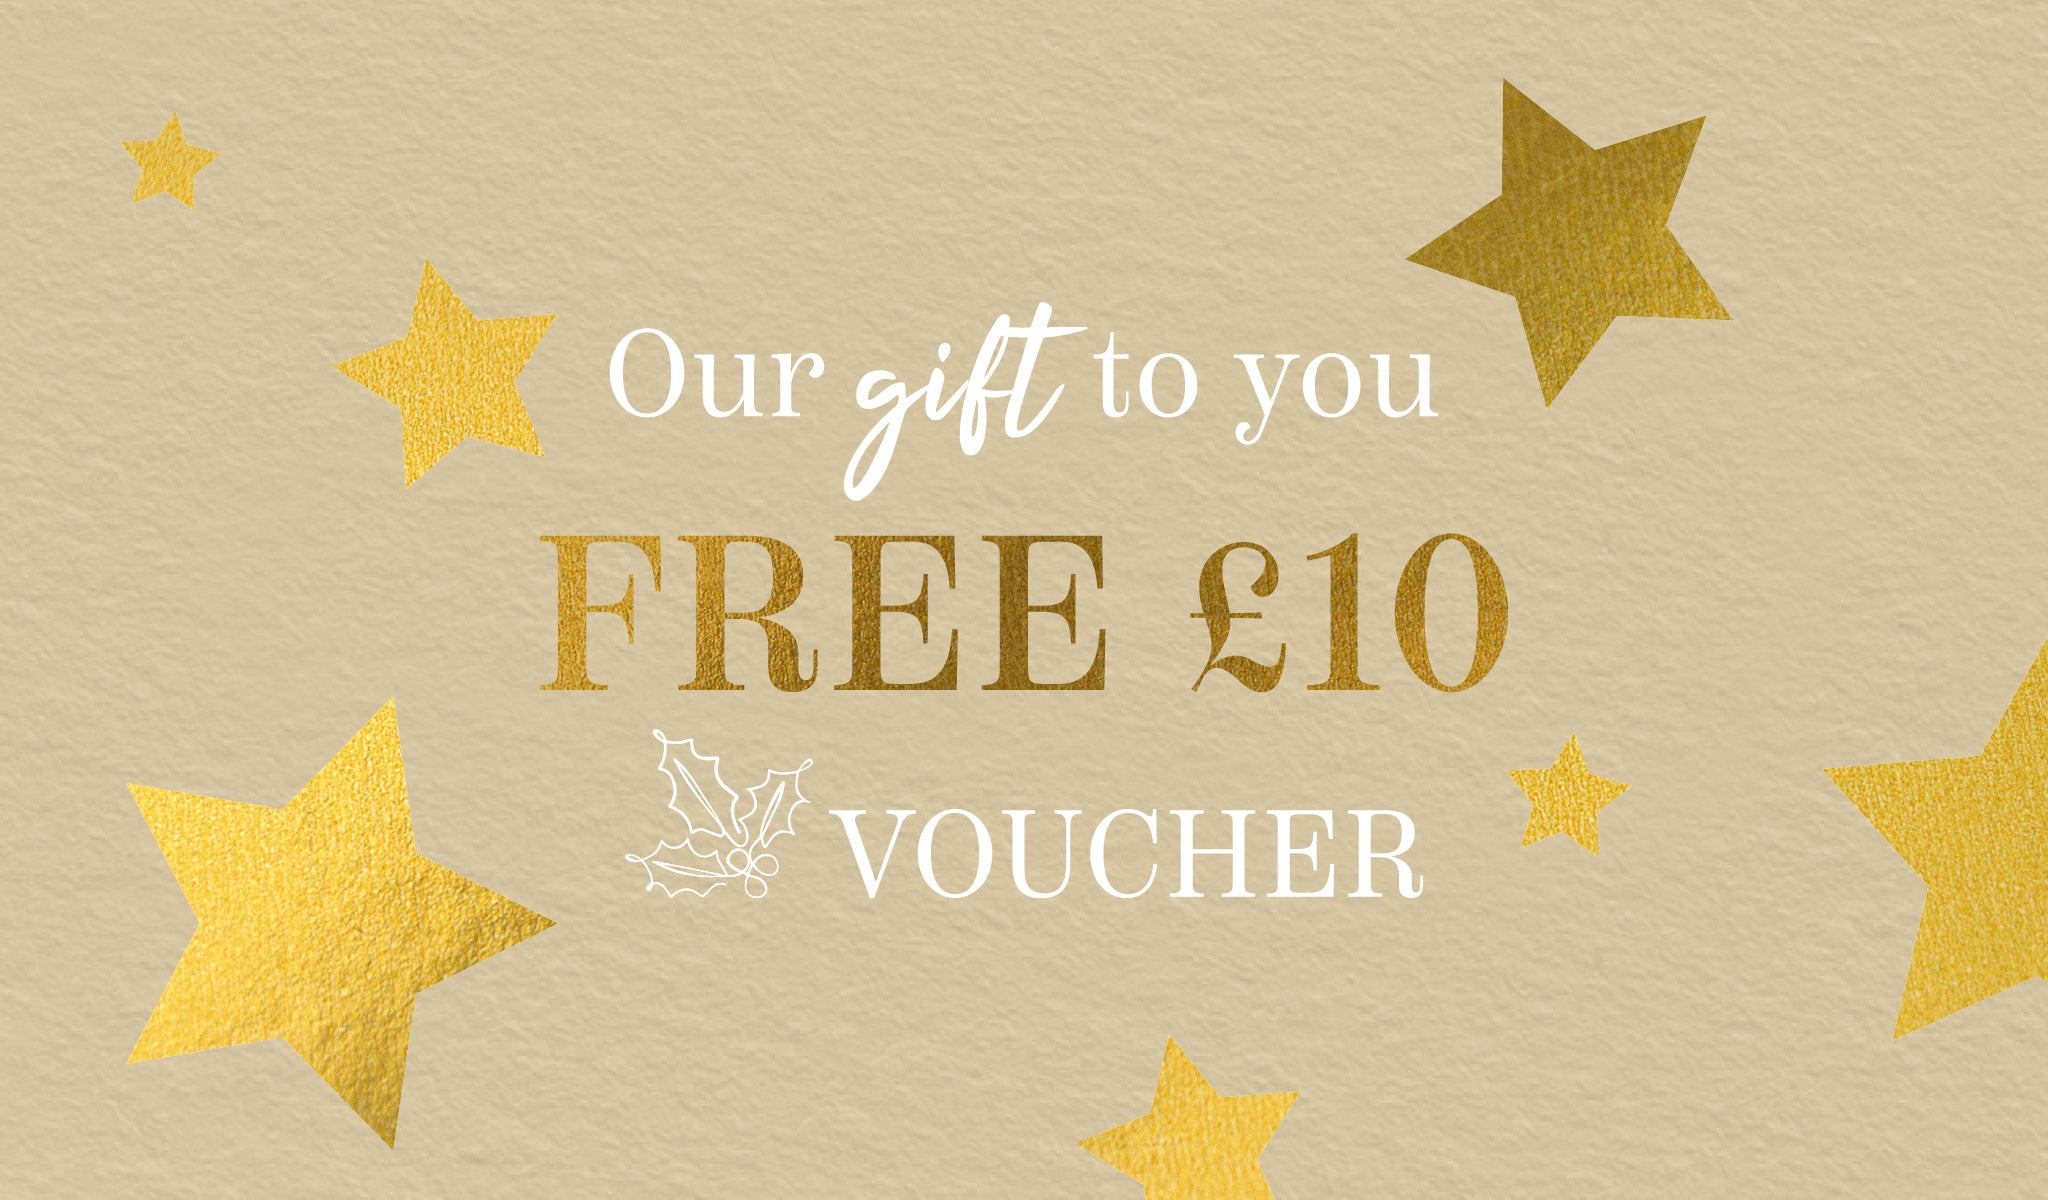 Our gift to you - Free £10 voucher